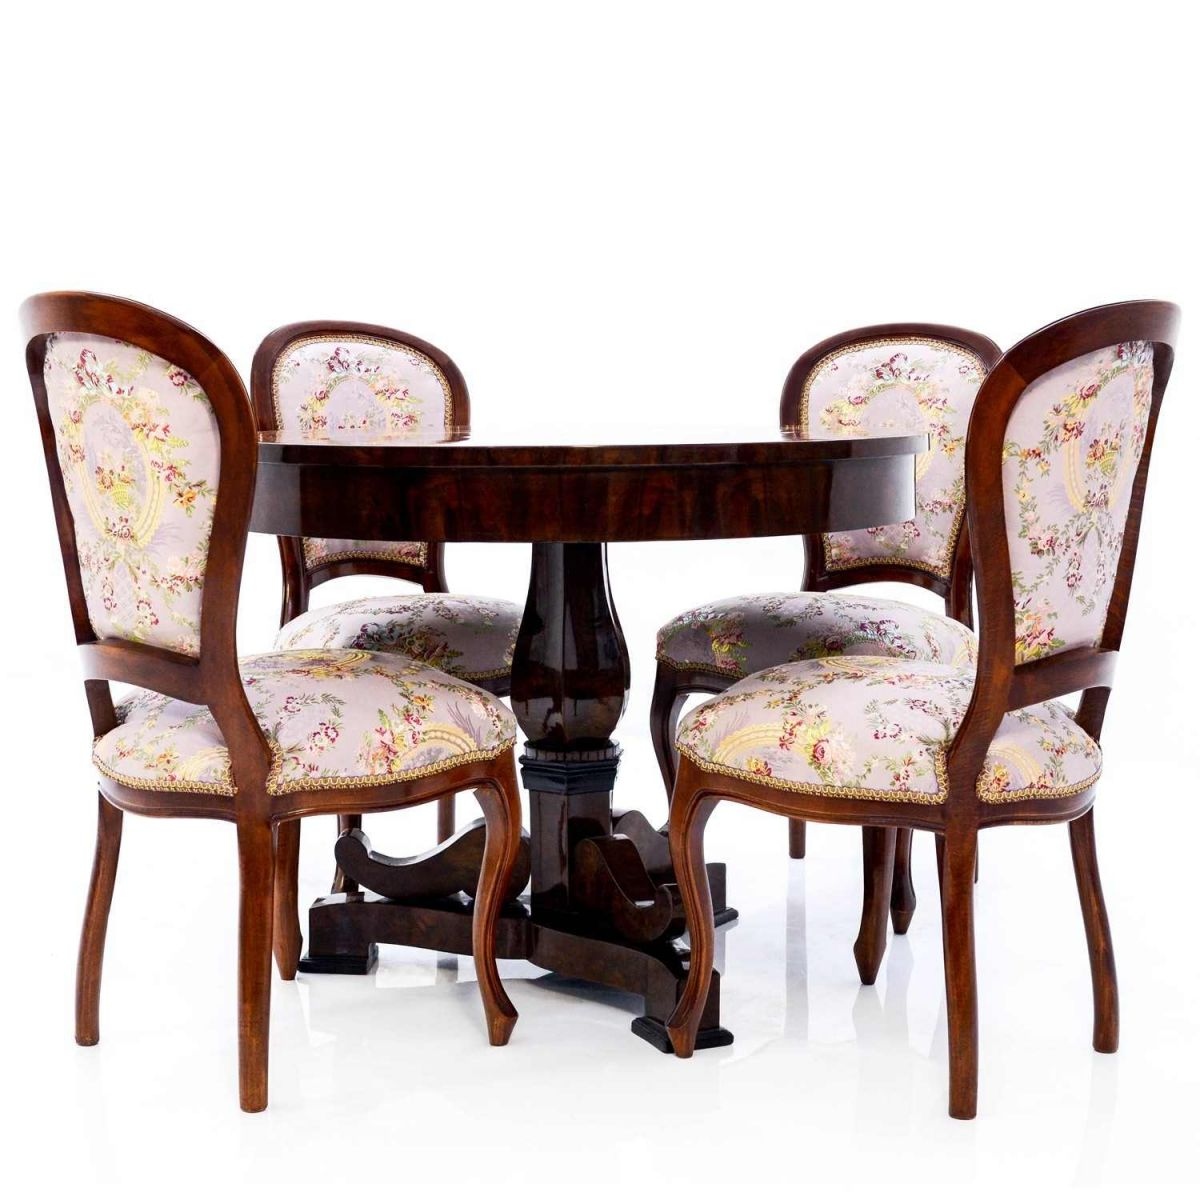 Τραπεζαρία K9-10035-French Style Dining Room X-10035